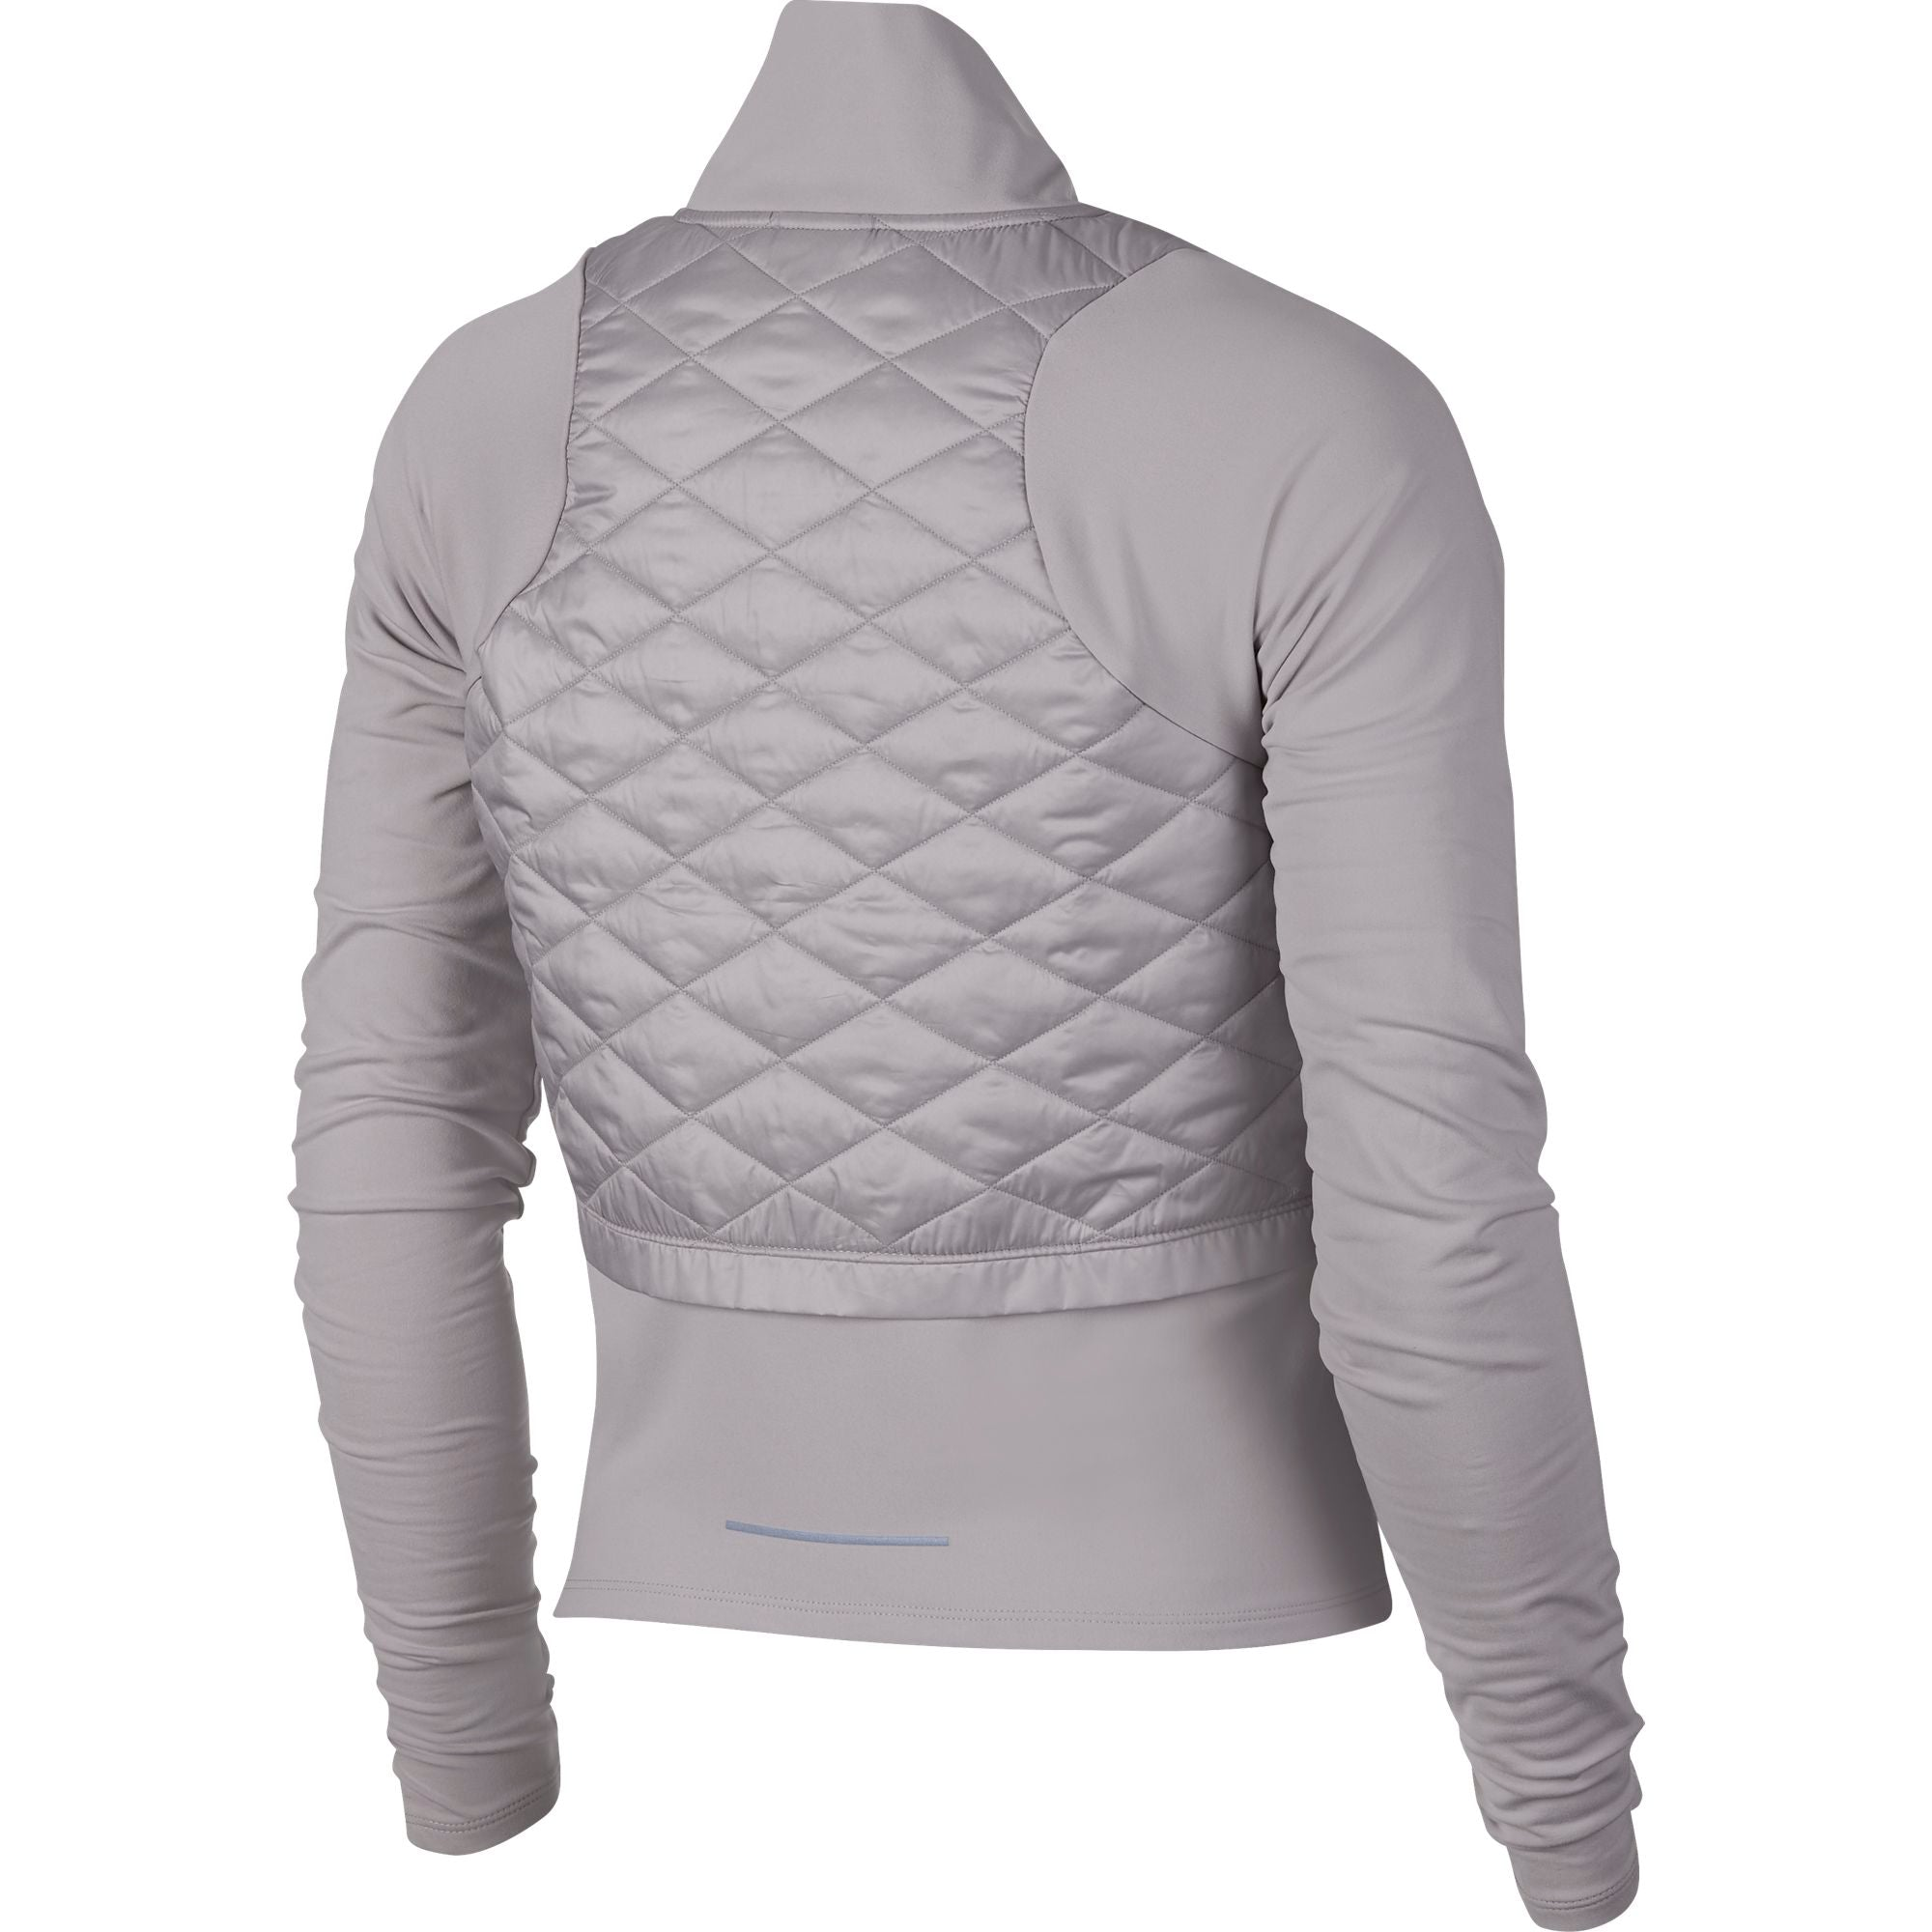 a6aabe2bfef0 Women s Nike Aerolayer Running Jacket - Atmosphere Grey   Atmosphere ...